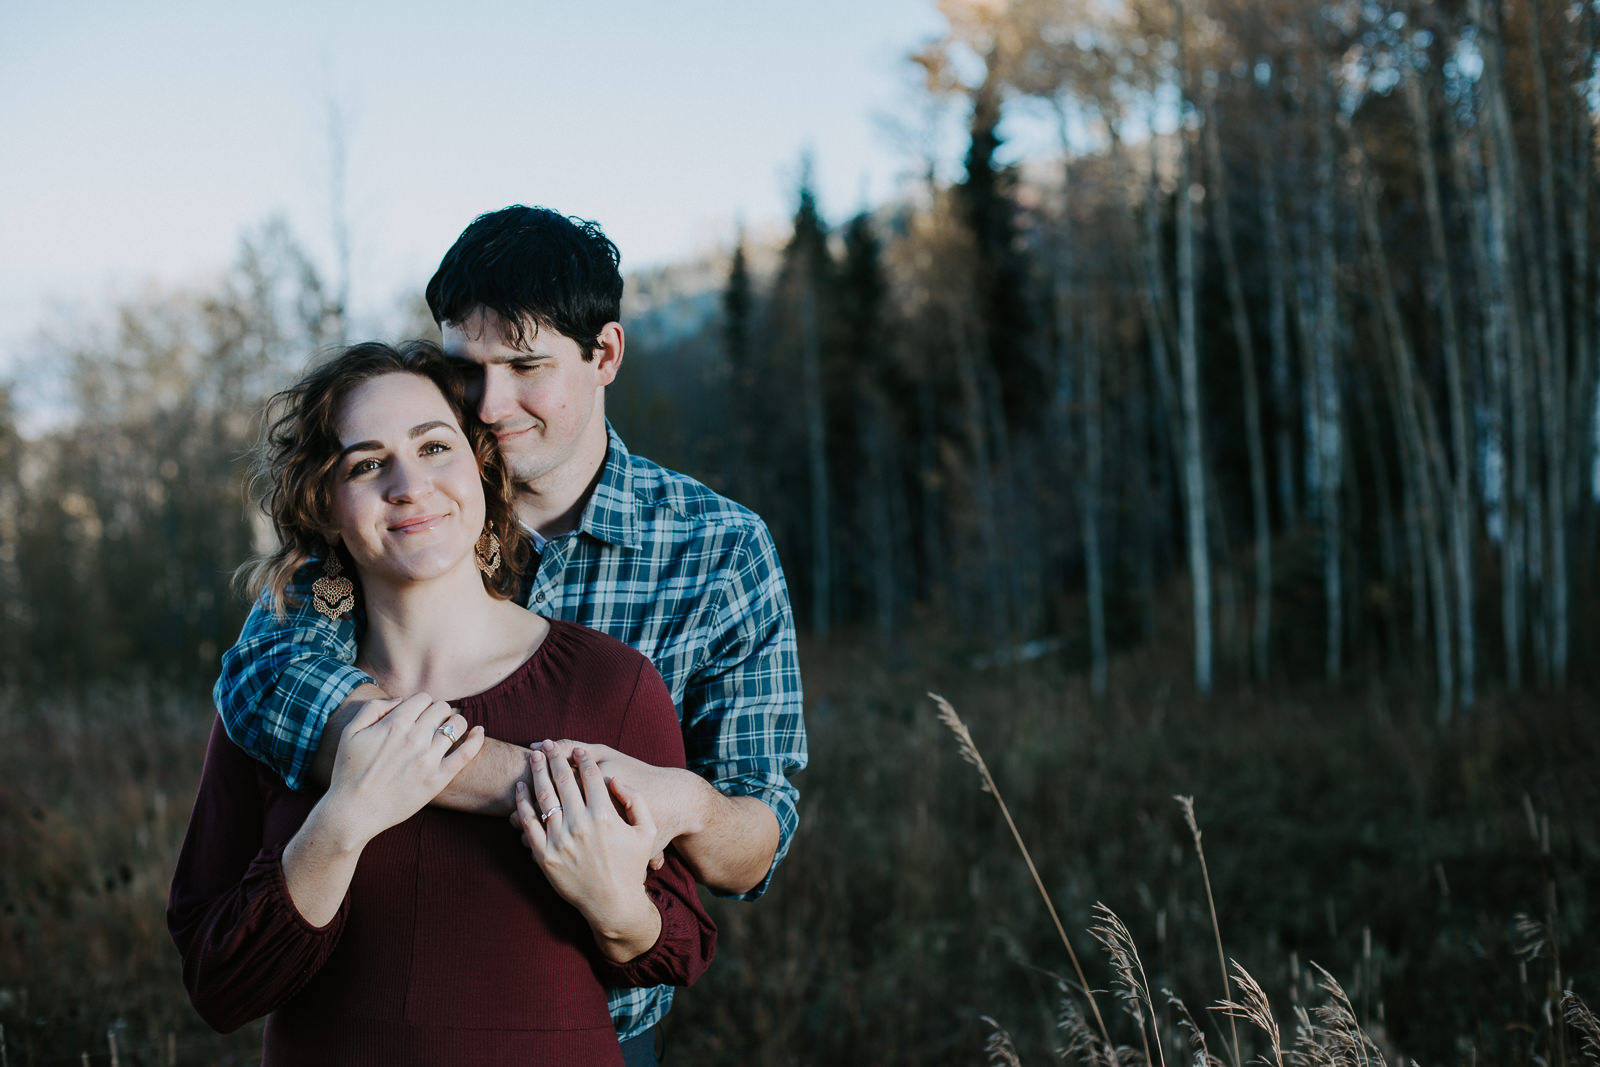 Smiling engaged couple embracing with aspen trees